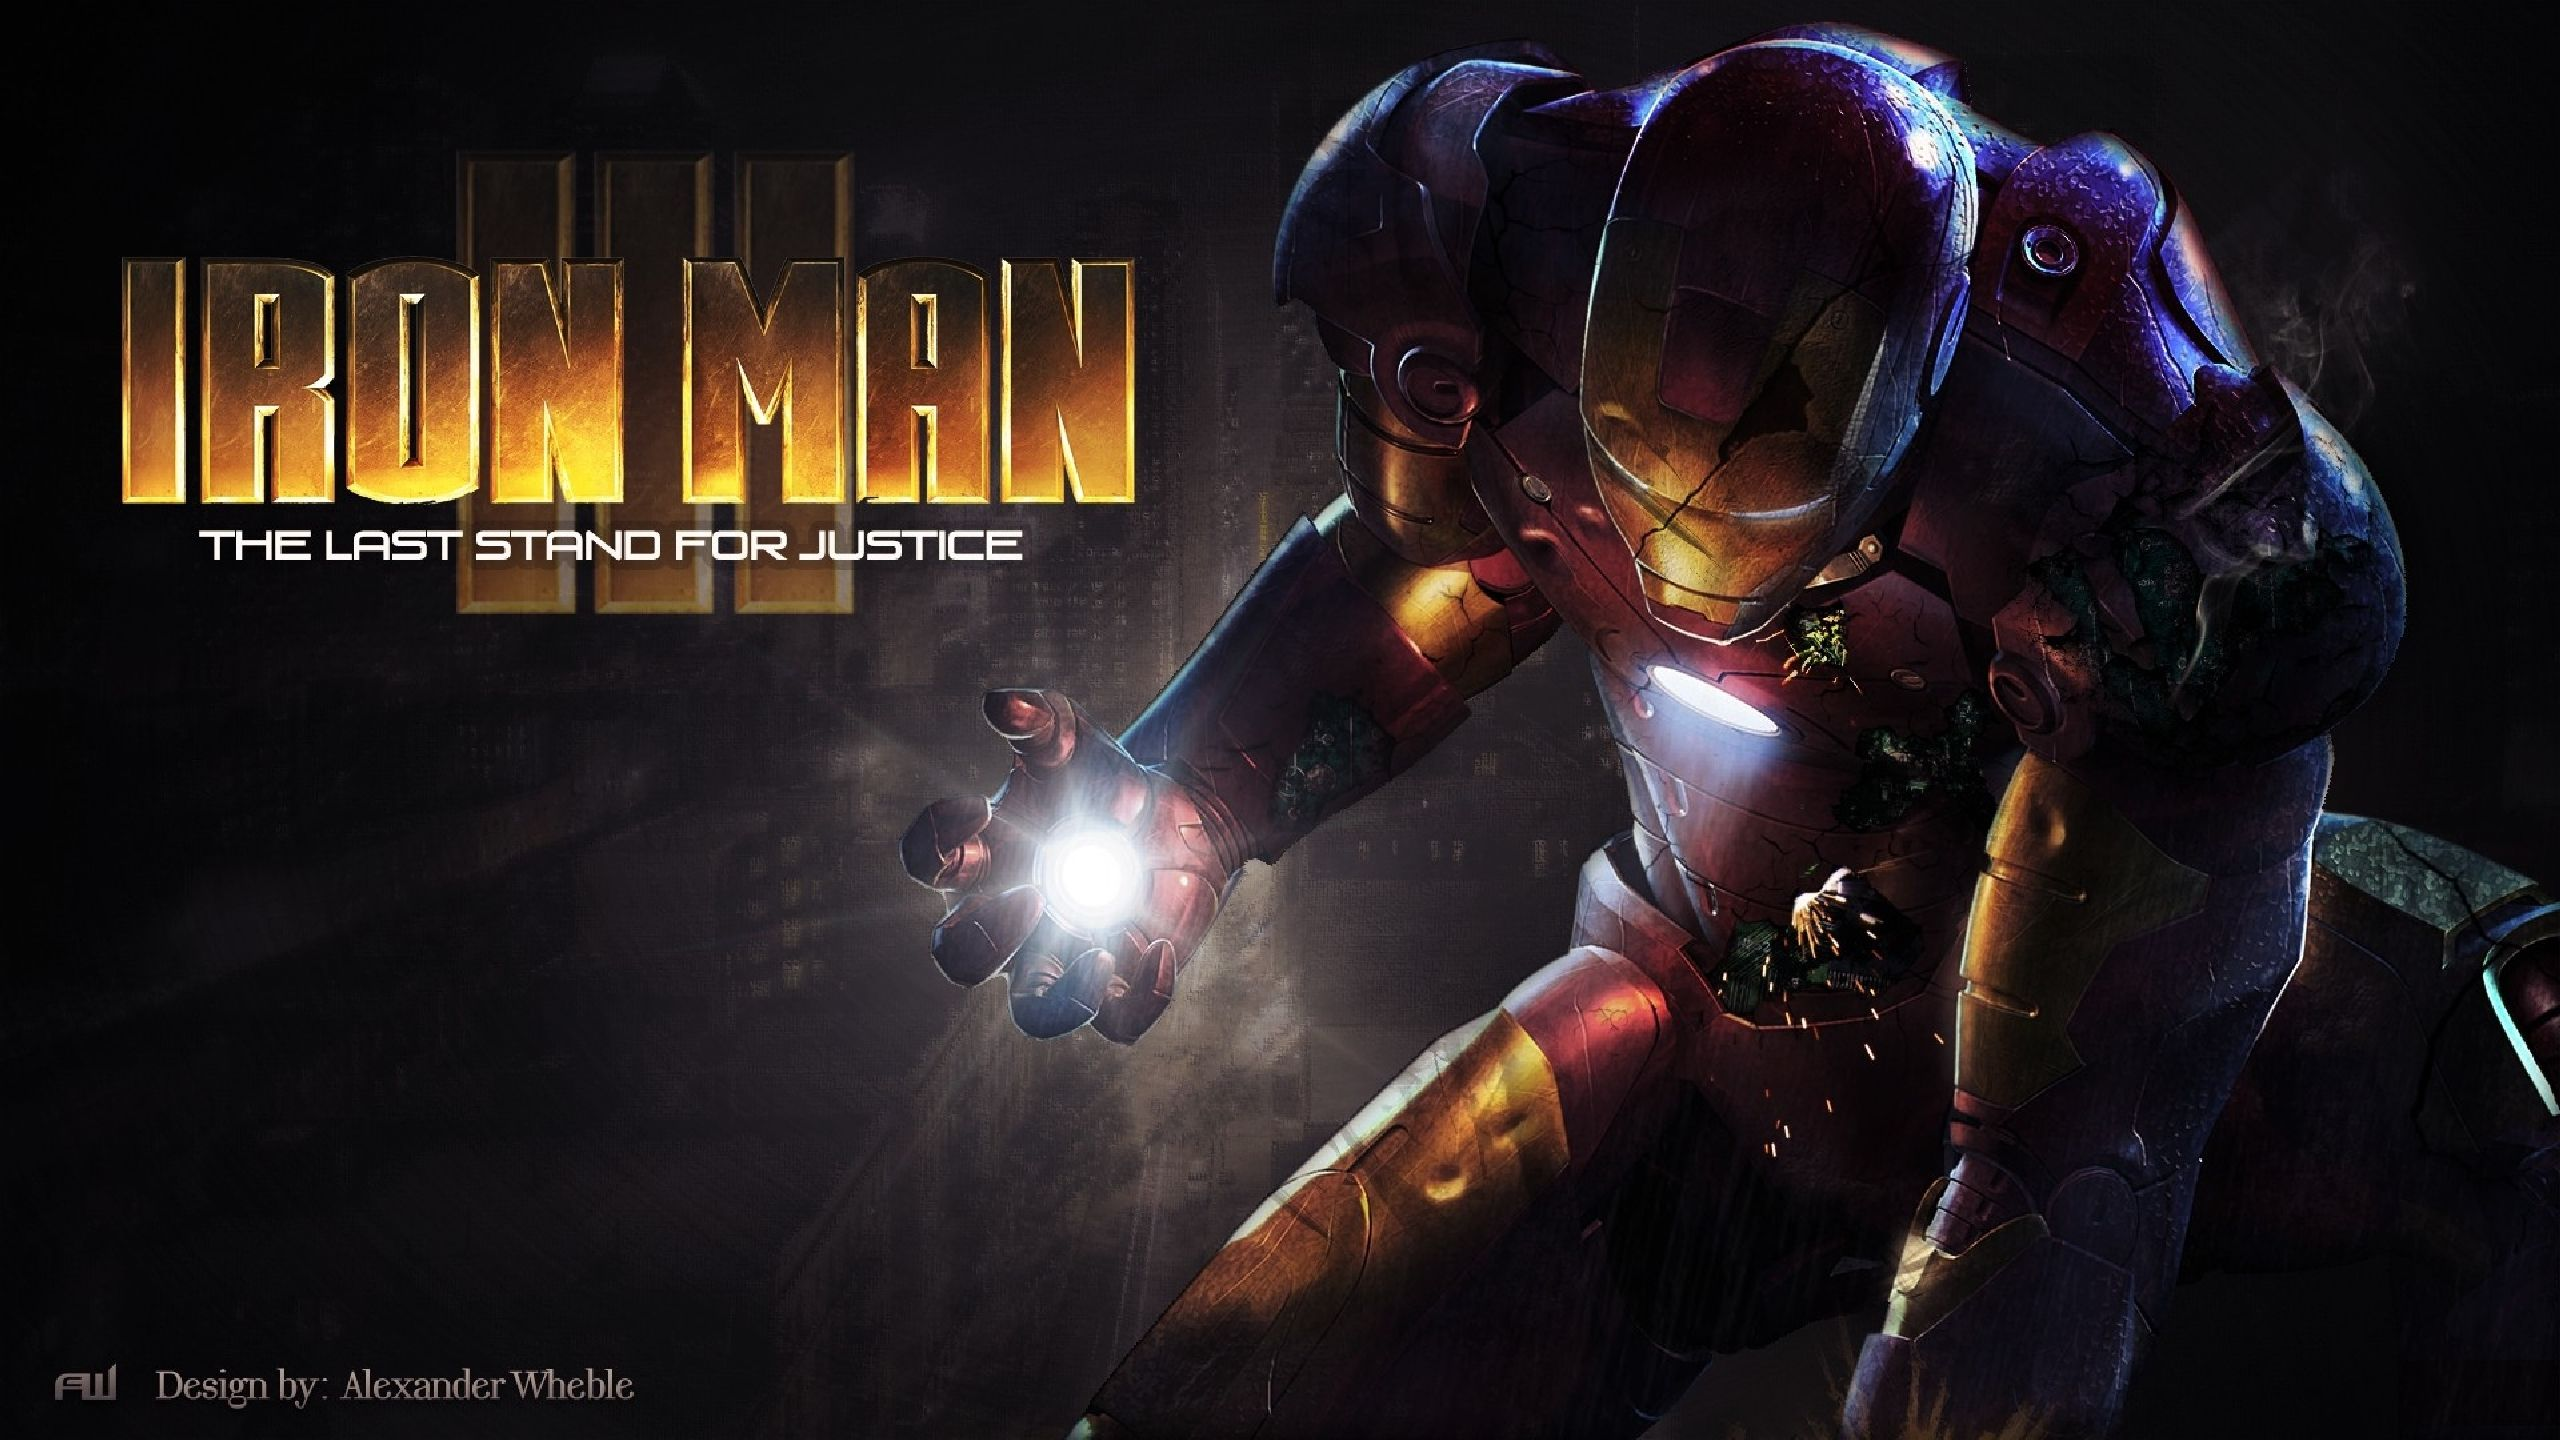 Trends for wallpaper iron man 3 suit